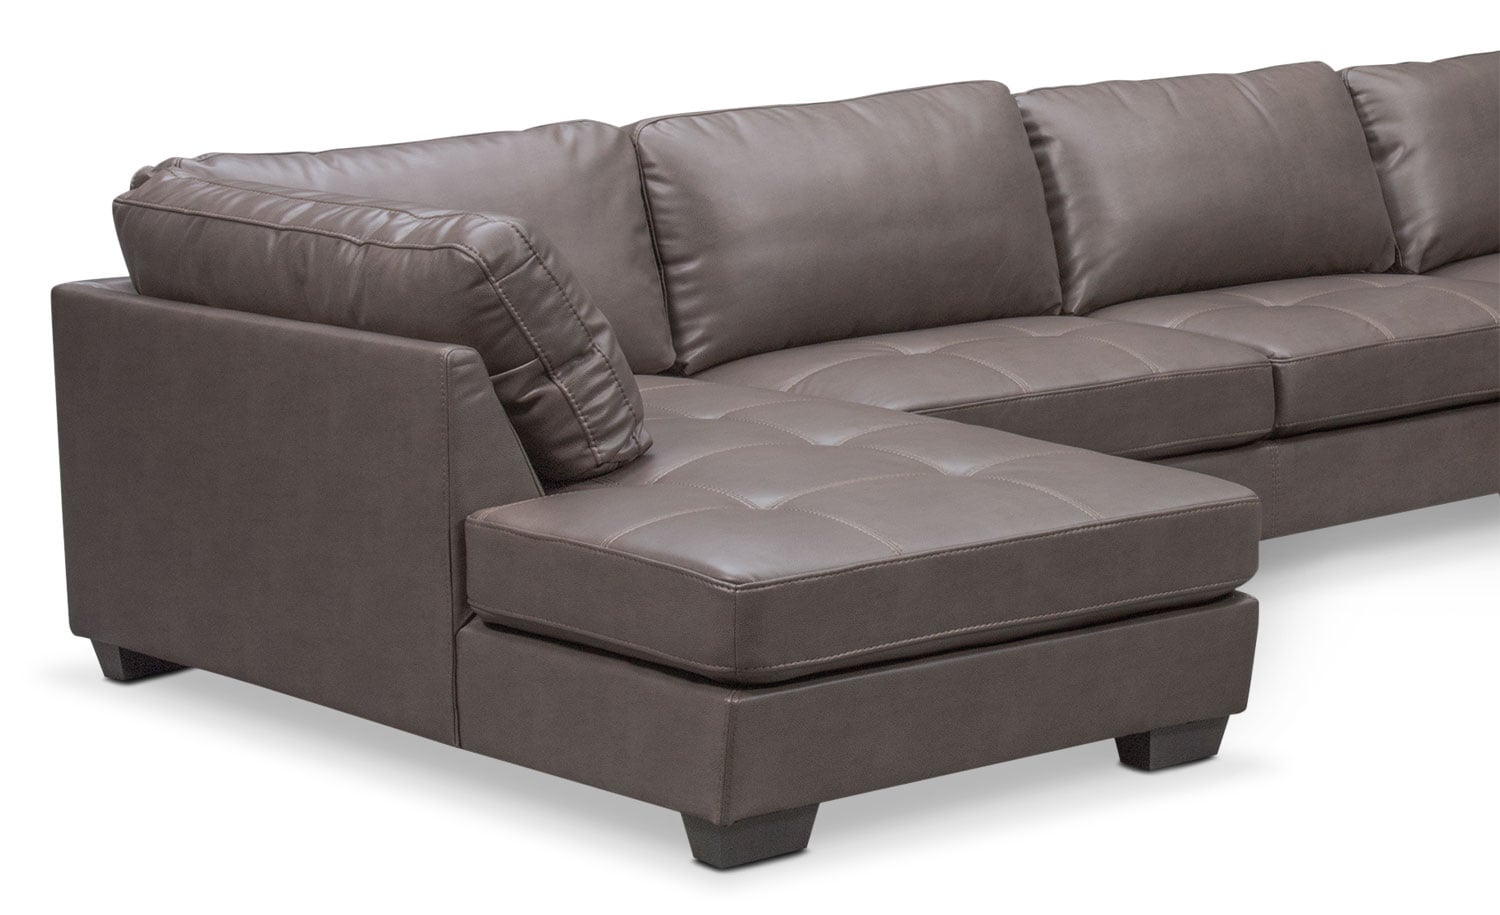 Santana 4 piece sectional with left facing chaise gray for 4 piece sectional sofa with chaise